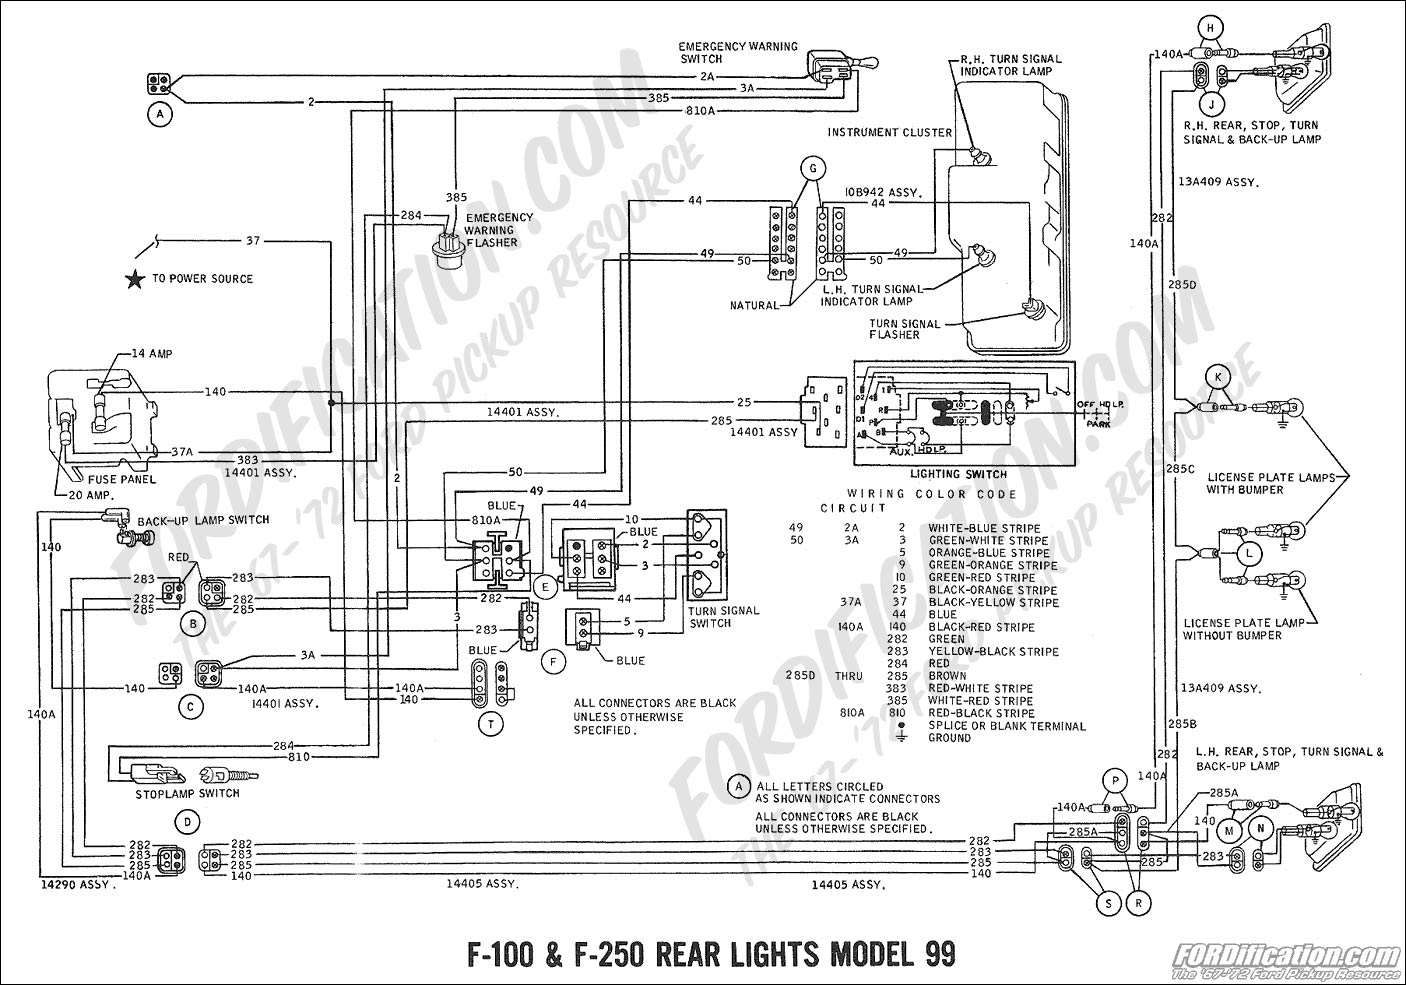 1969 vw bug radio wiring diagrams